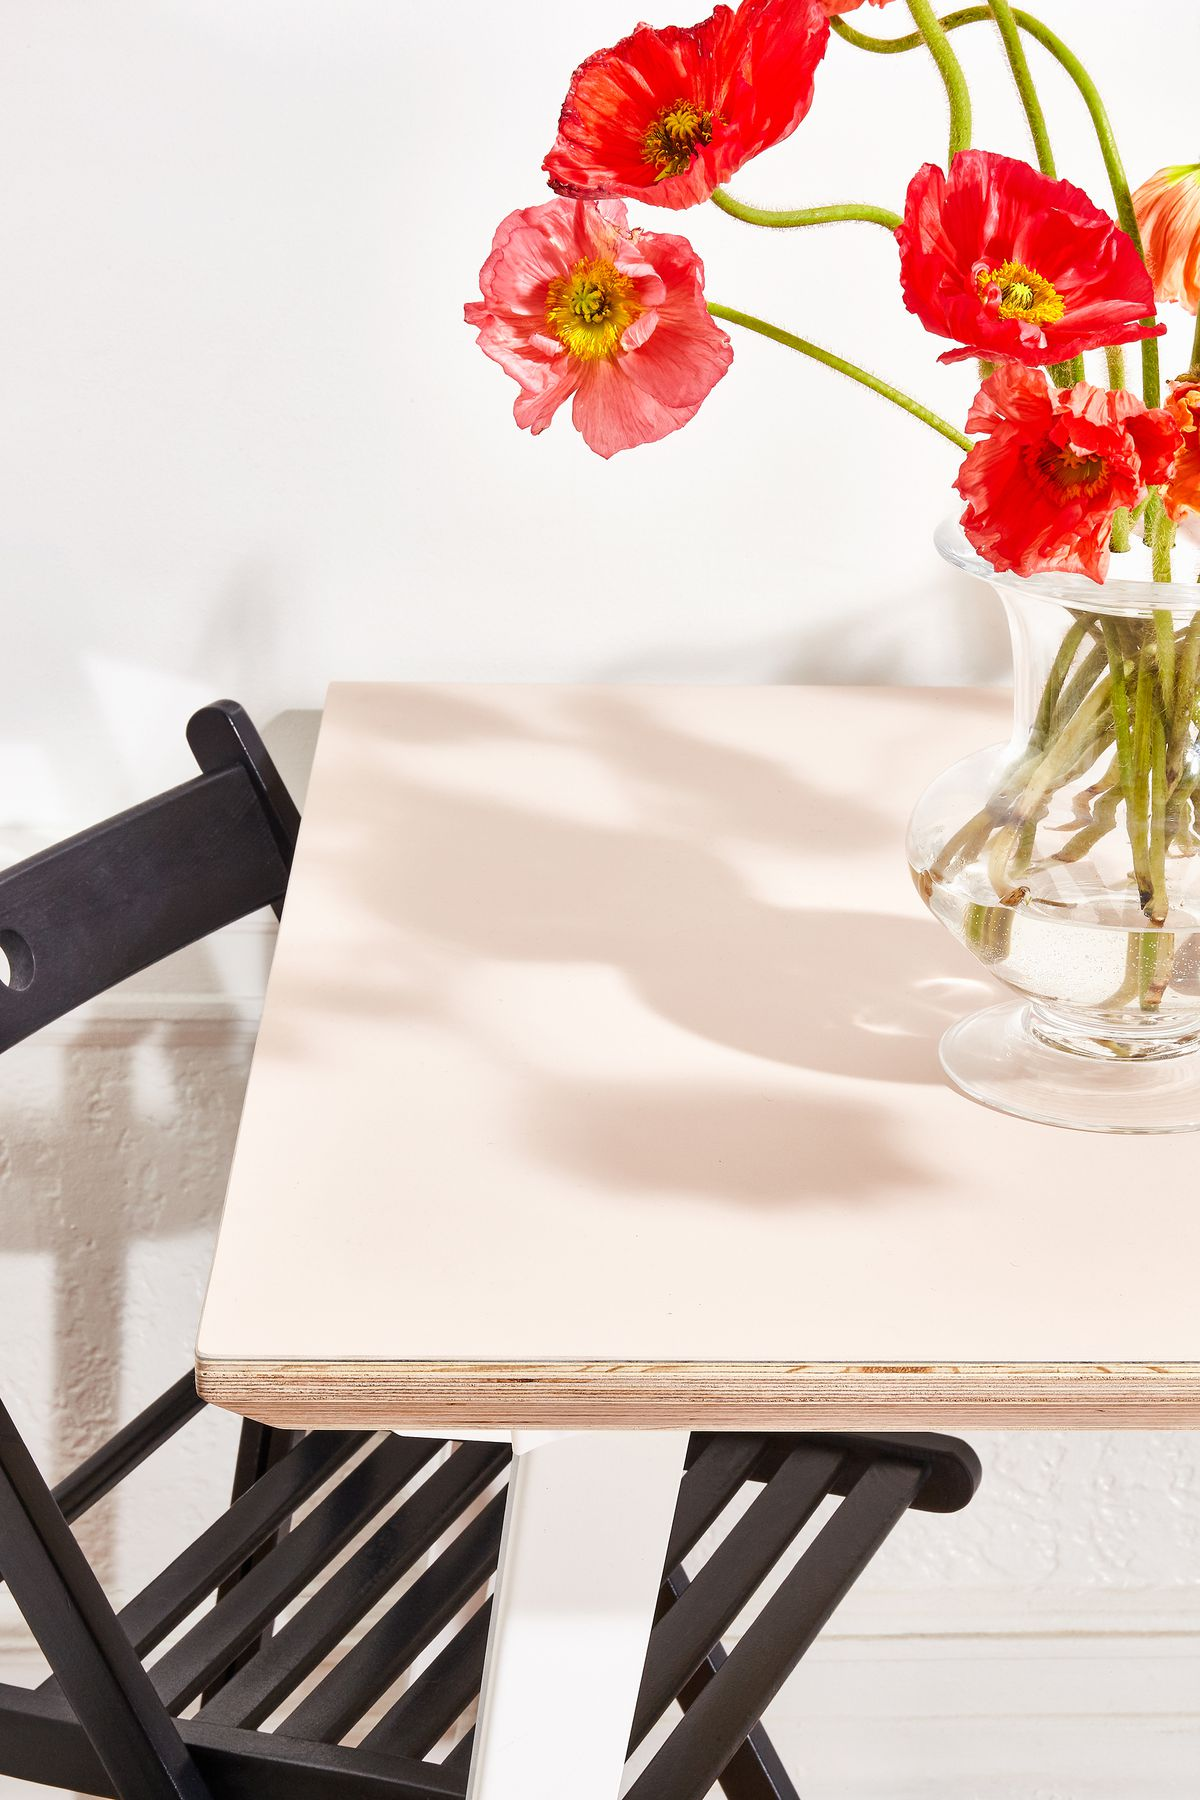 A pale pink table with white legs, a black folding chair, and red poppies in a clear glass vase.